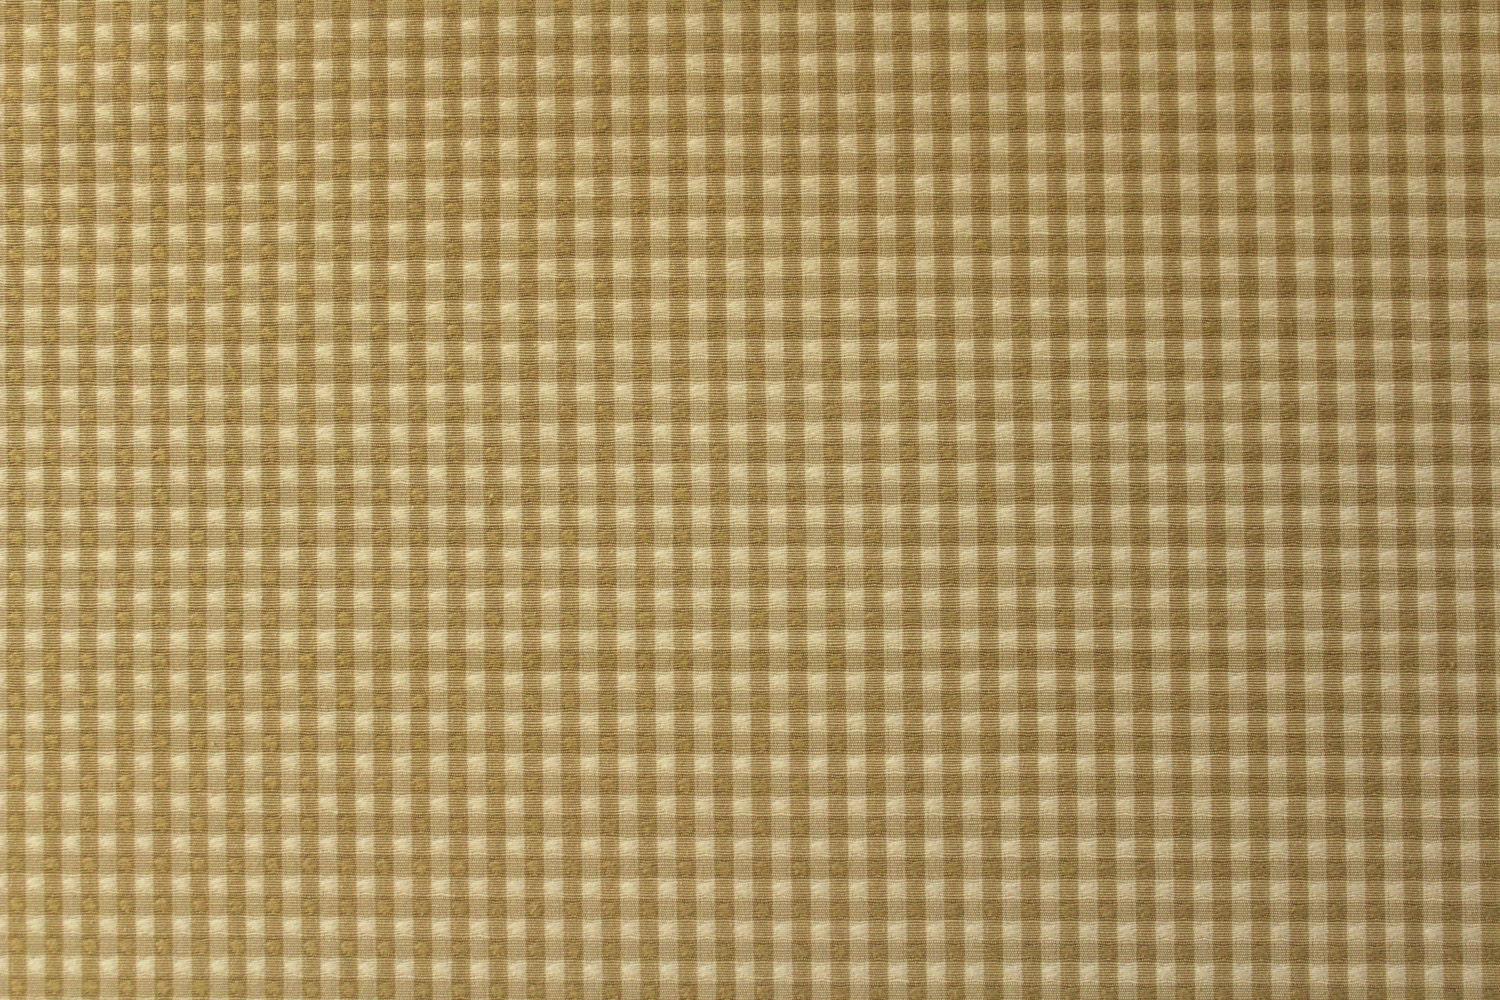 Light brown gingham fabric by the yard 043 for Gingham fabric